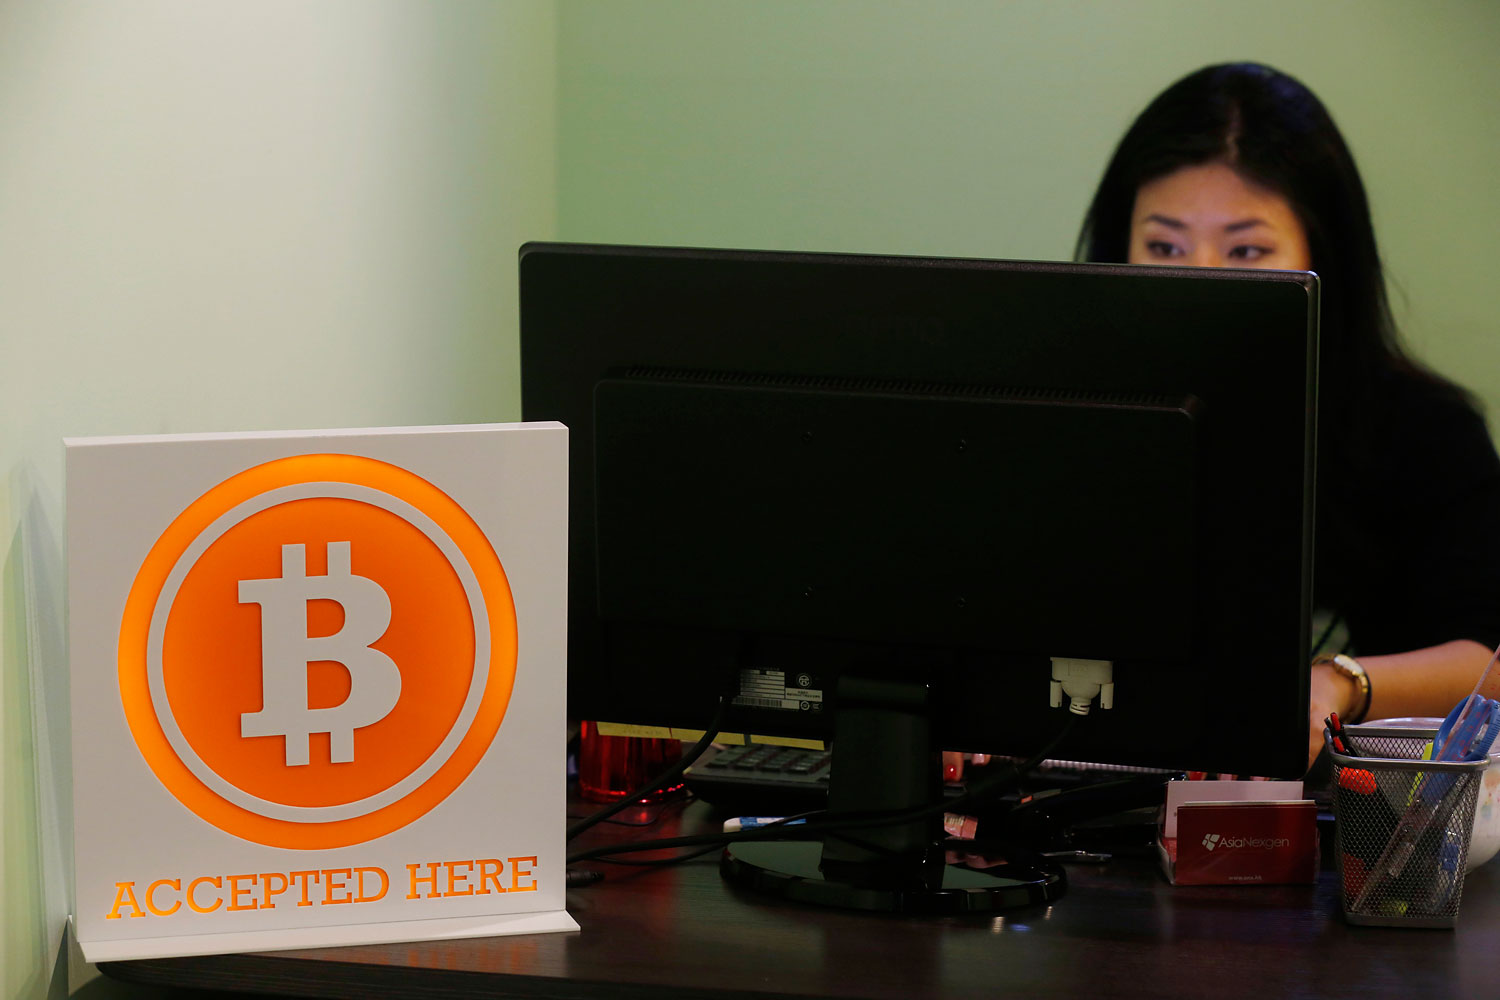 A staff member of ANXBTC Bitcoin Exchange works on the reception in Hong Kong, March 13, 2014.